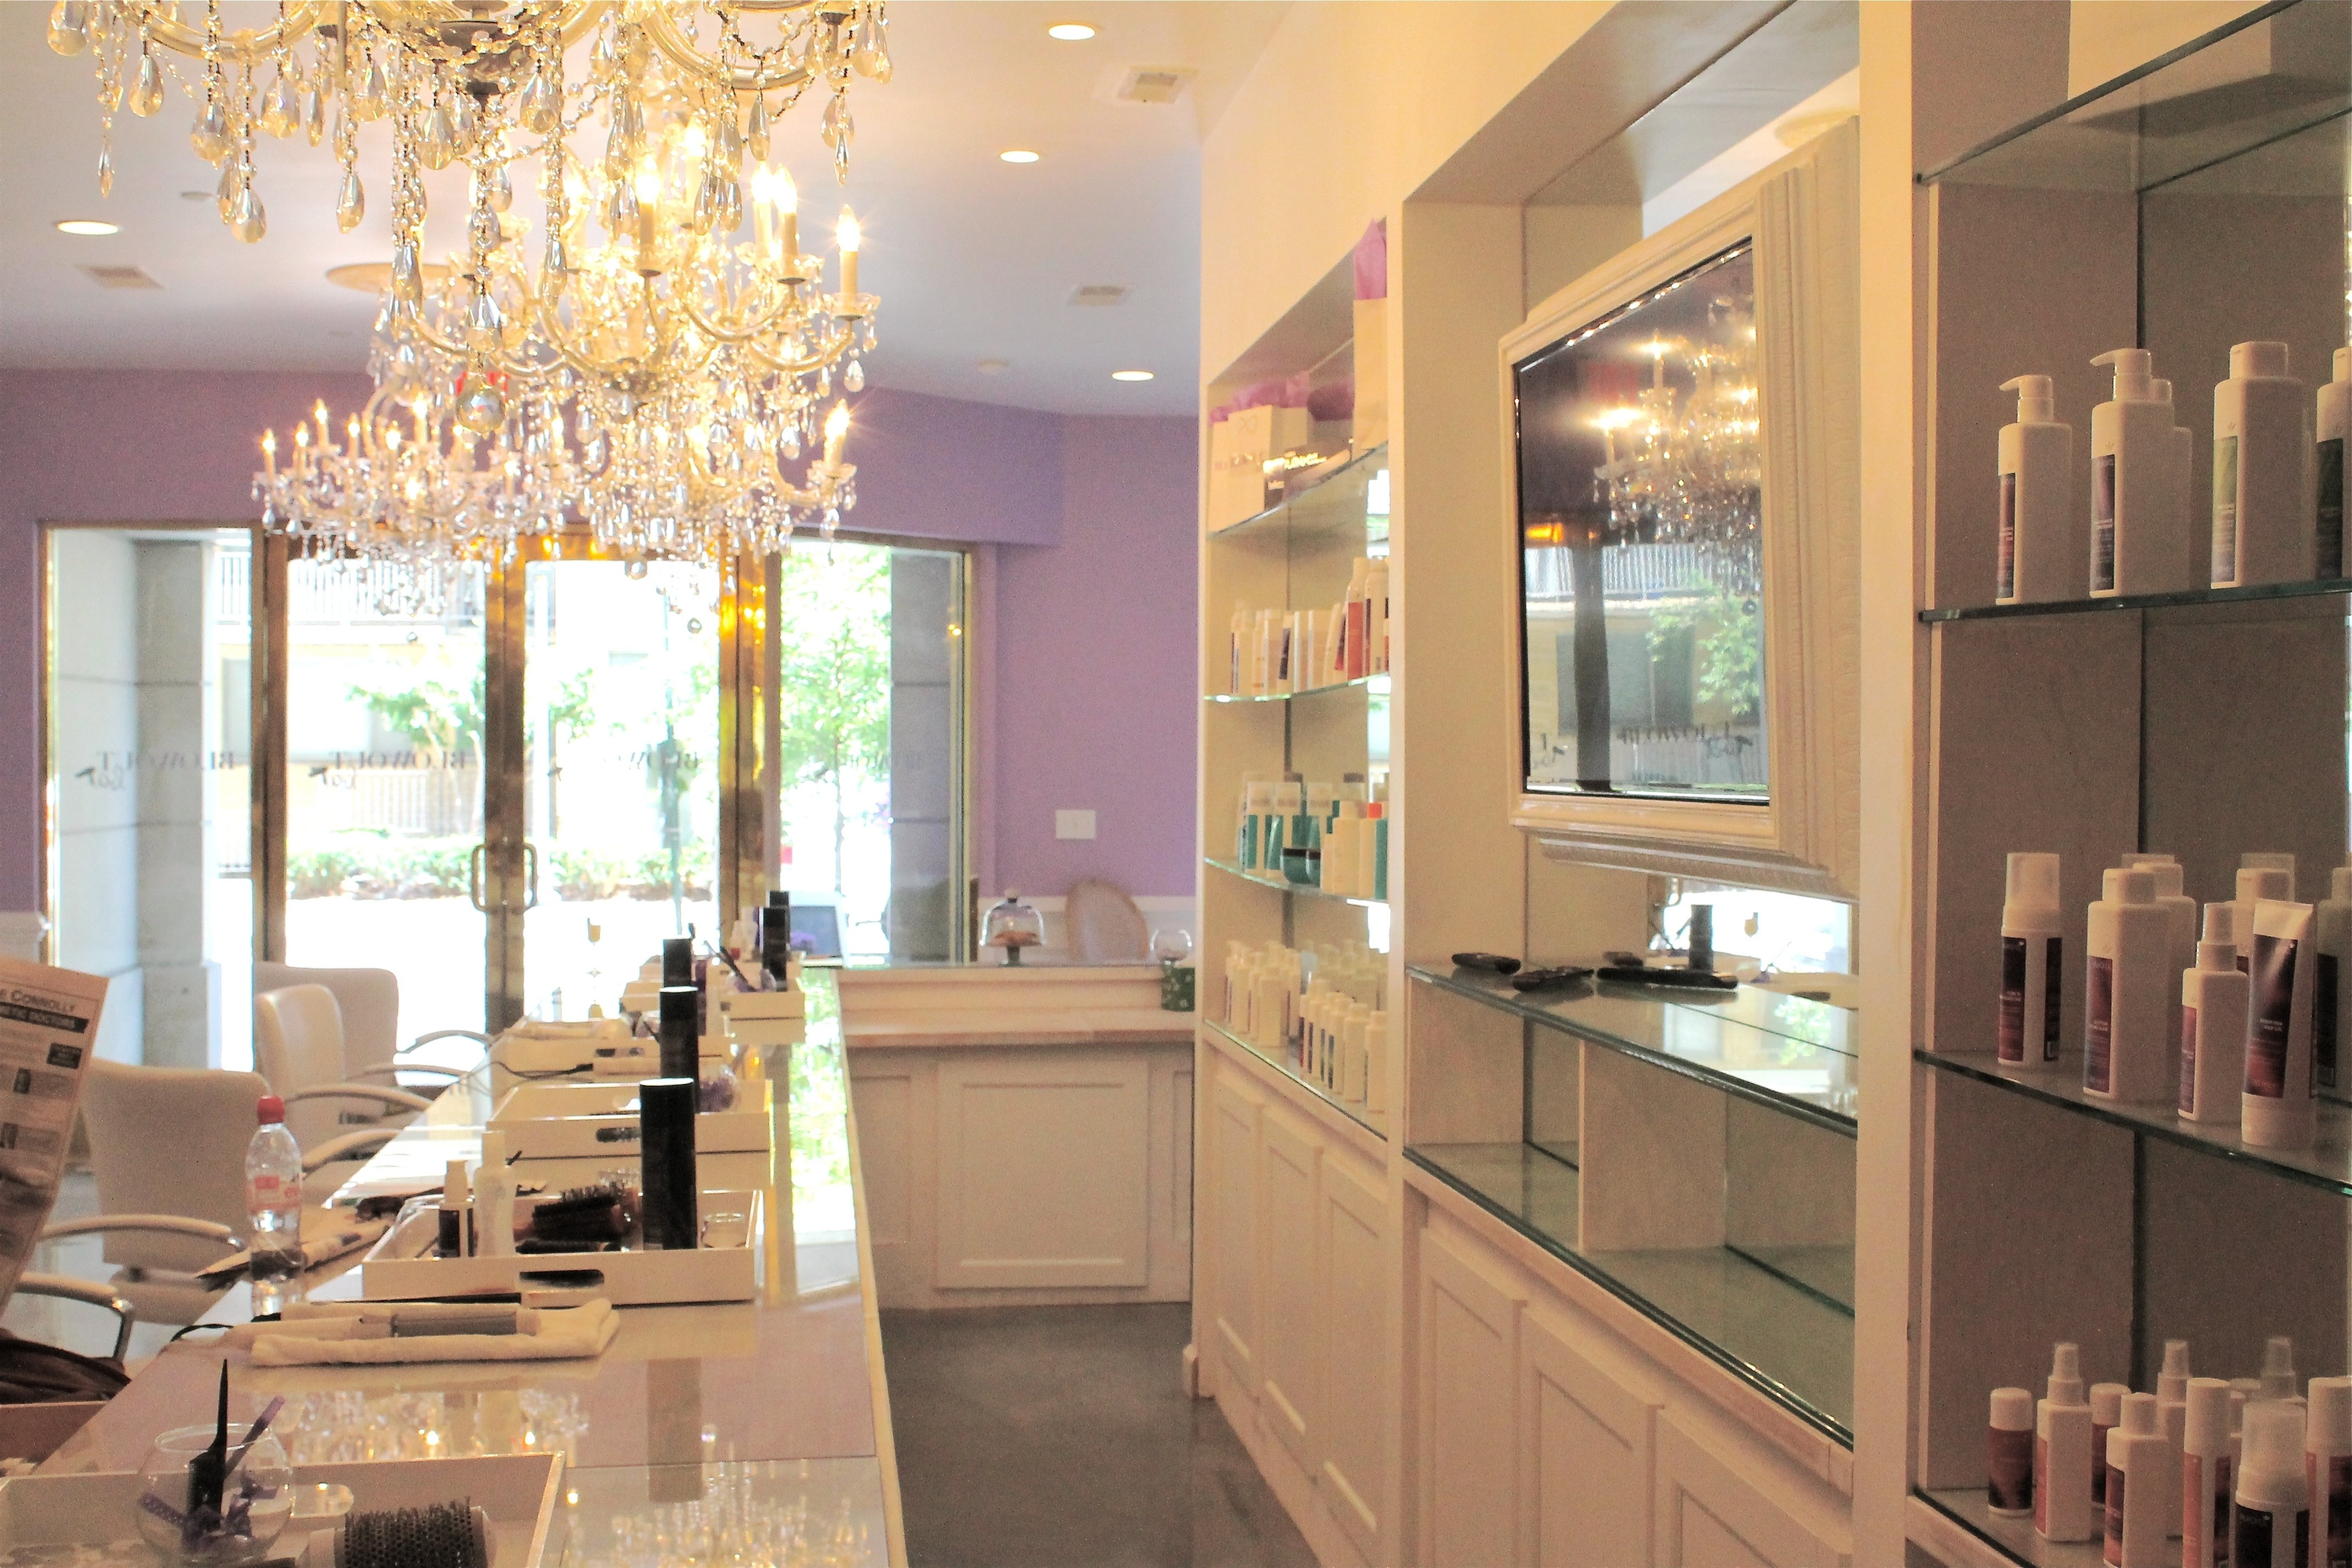 Ideal Nail Salon Interior Design Ideas Awesome Nail Salon Interior Design  Ideas Nail Design Jpg 4272x2848